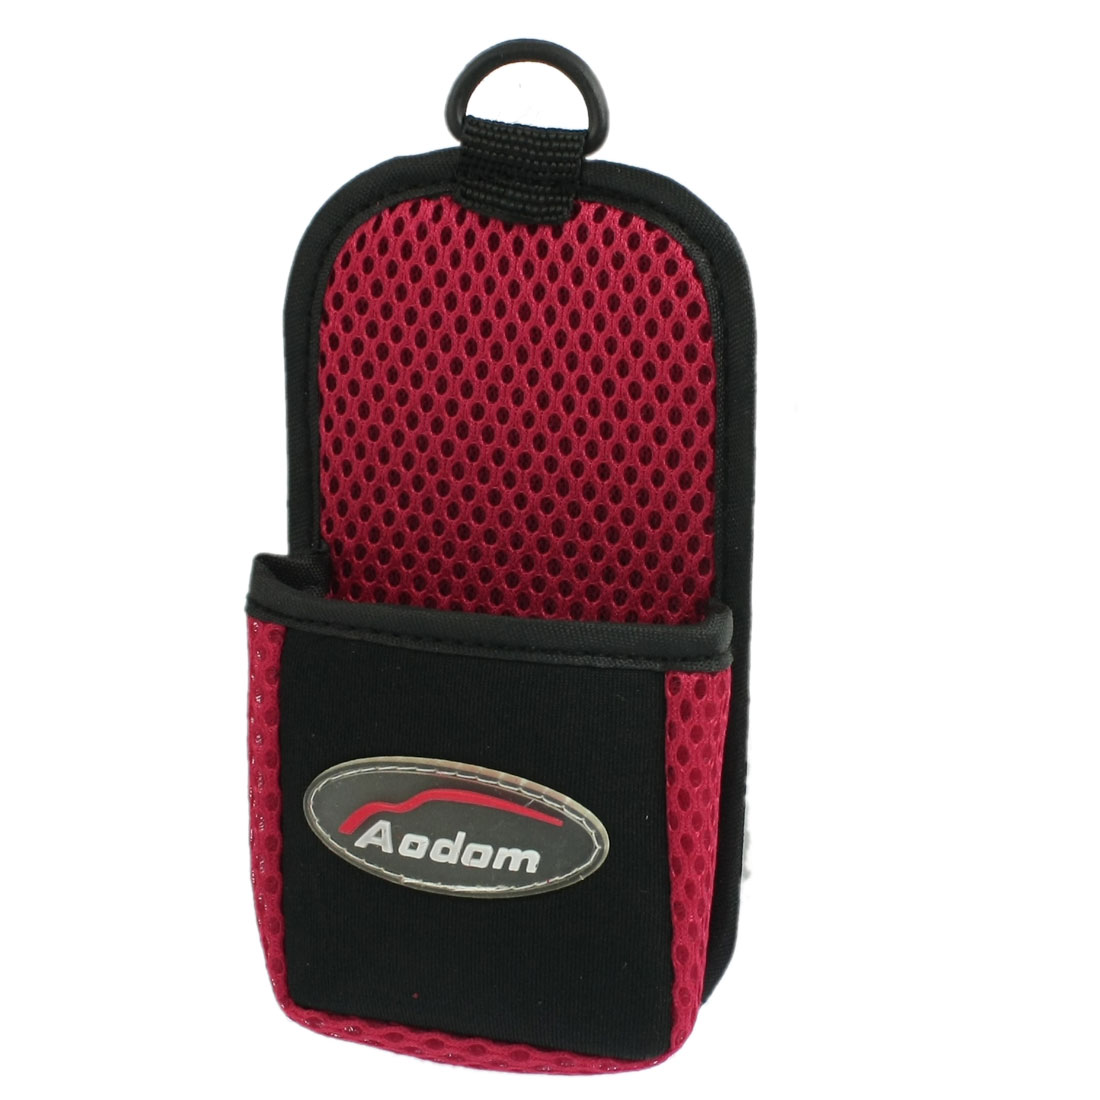 Car Auto Air Vent Mount Red Black Mobile Phone Pouch Holder Bag